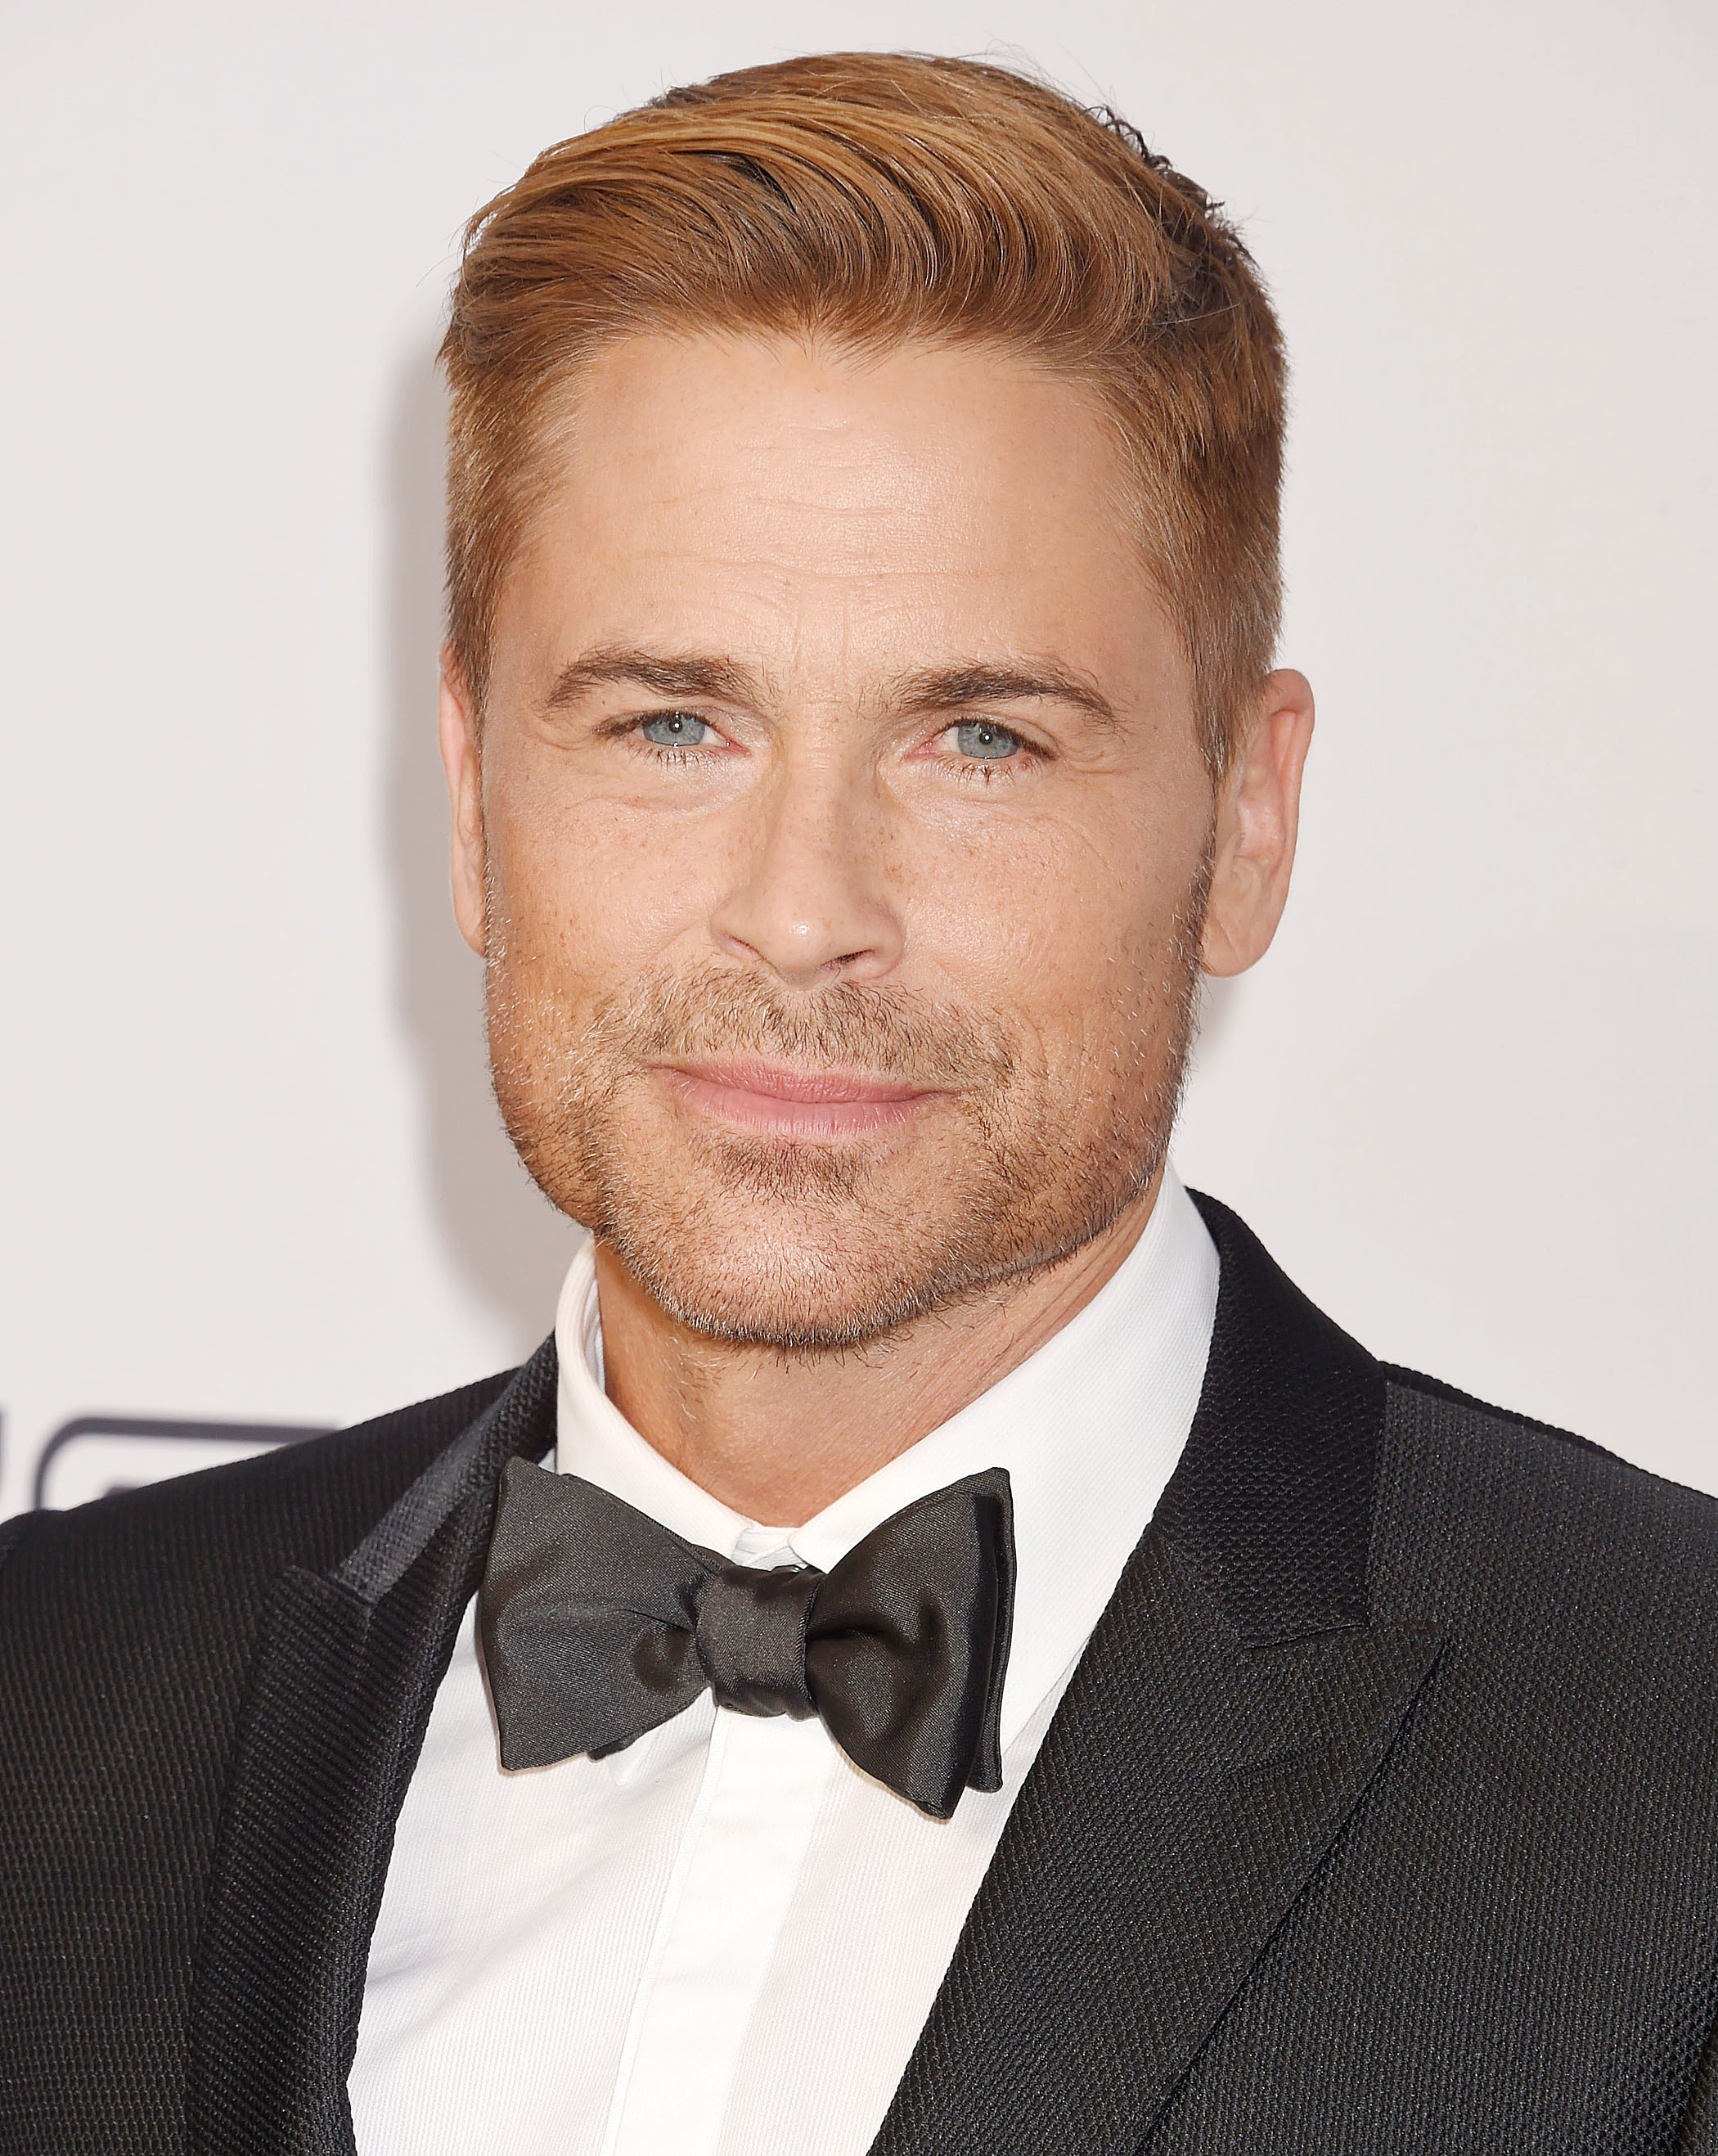 Hairstyles for men over 50: Rob Lowe with blonde short hair in tapered finish with soft combover wearing a smart suit.